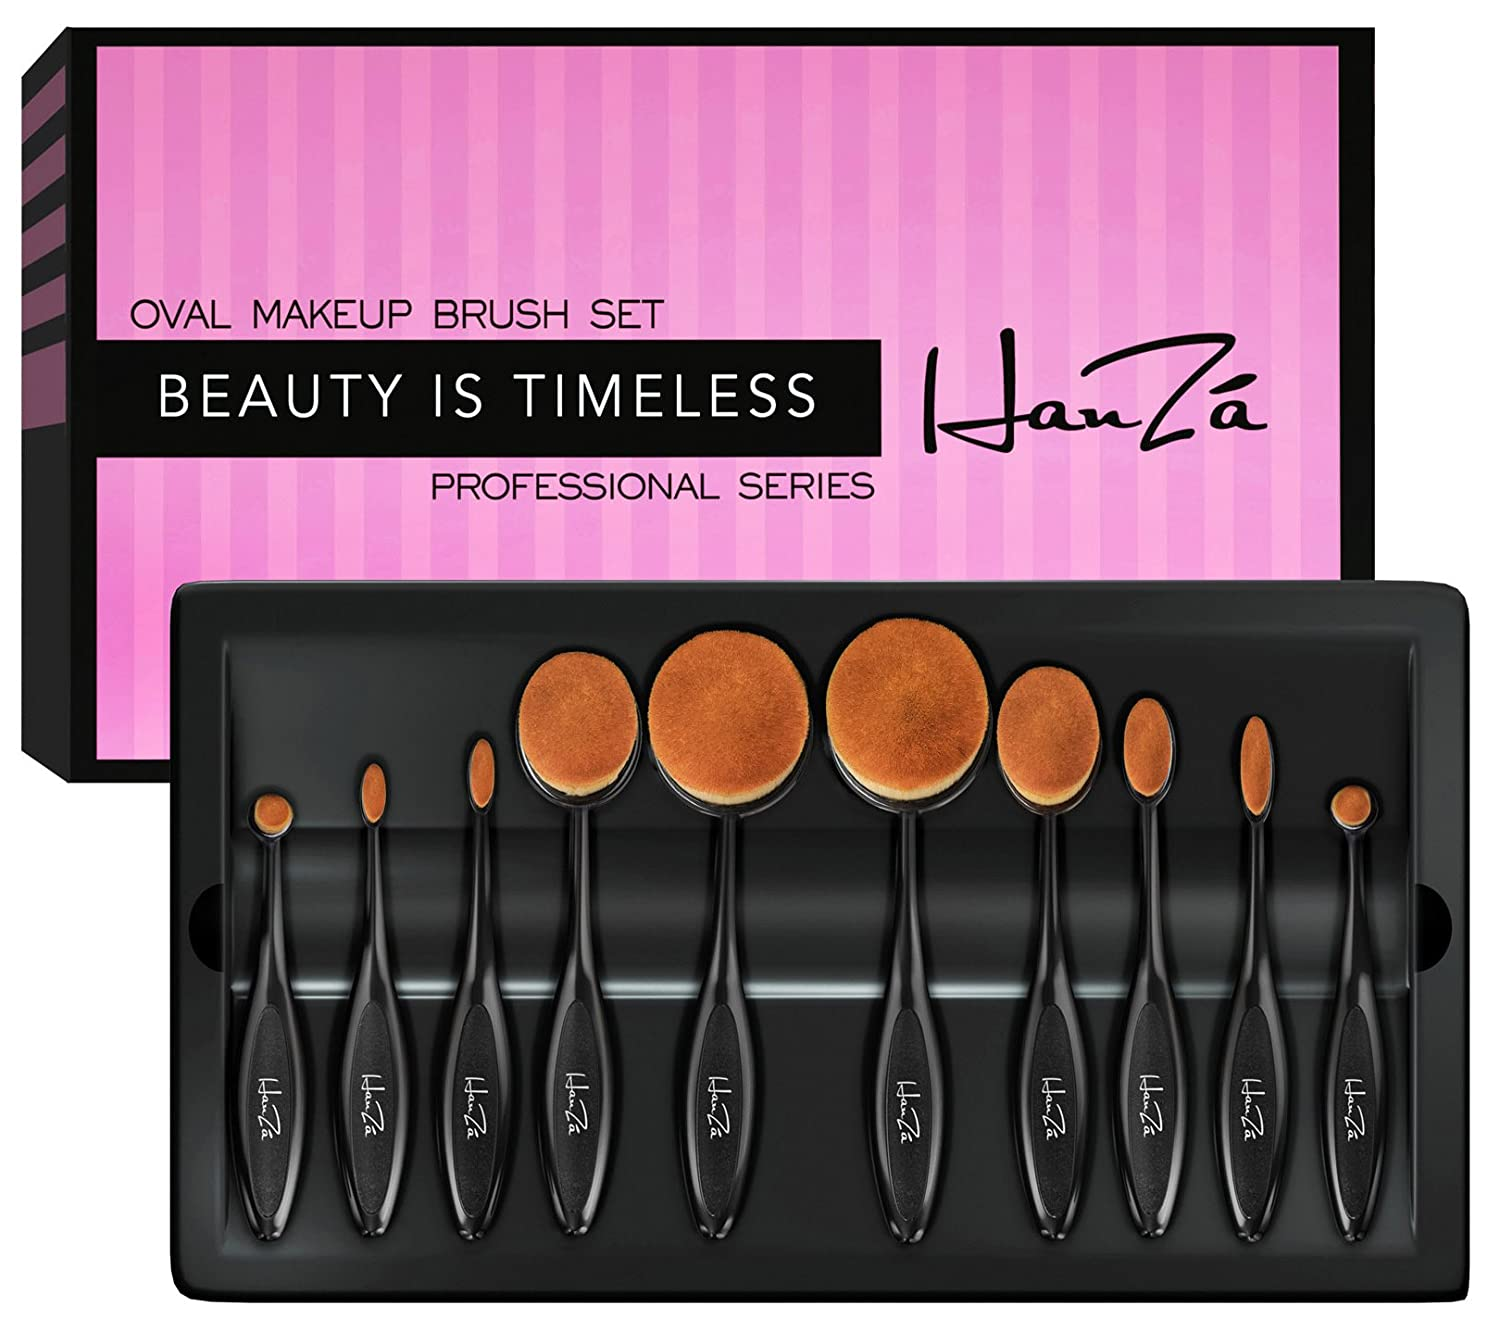 Makeup Brushes by HanZá - 10 PIECE Professional Oval Makeup Brush Sets For Powder Blush Foundation Concealer Eyeliner Eye Shadow Etc. Easily Blends and Contours Cosmetics HanZá HANZA-2